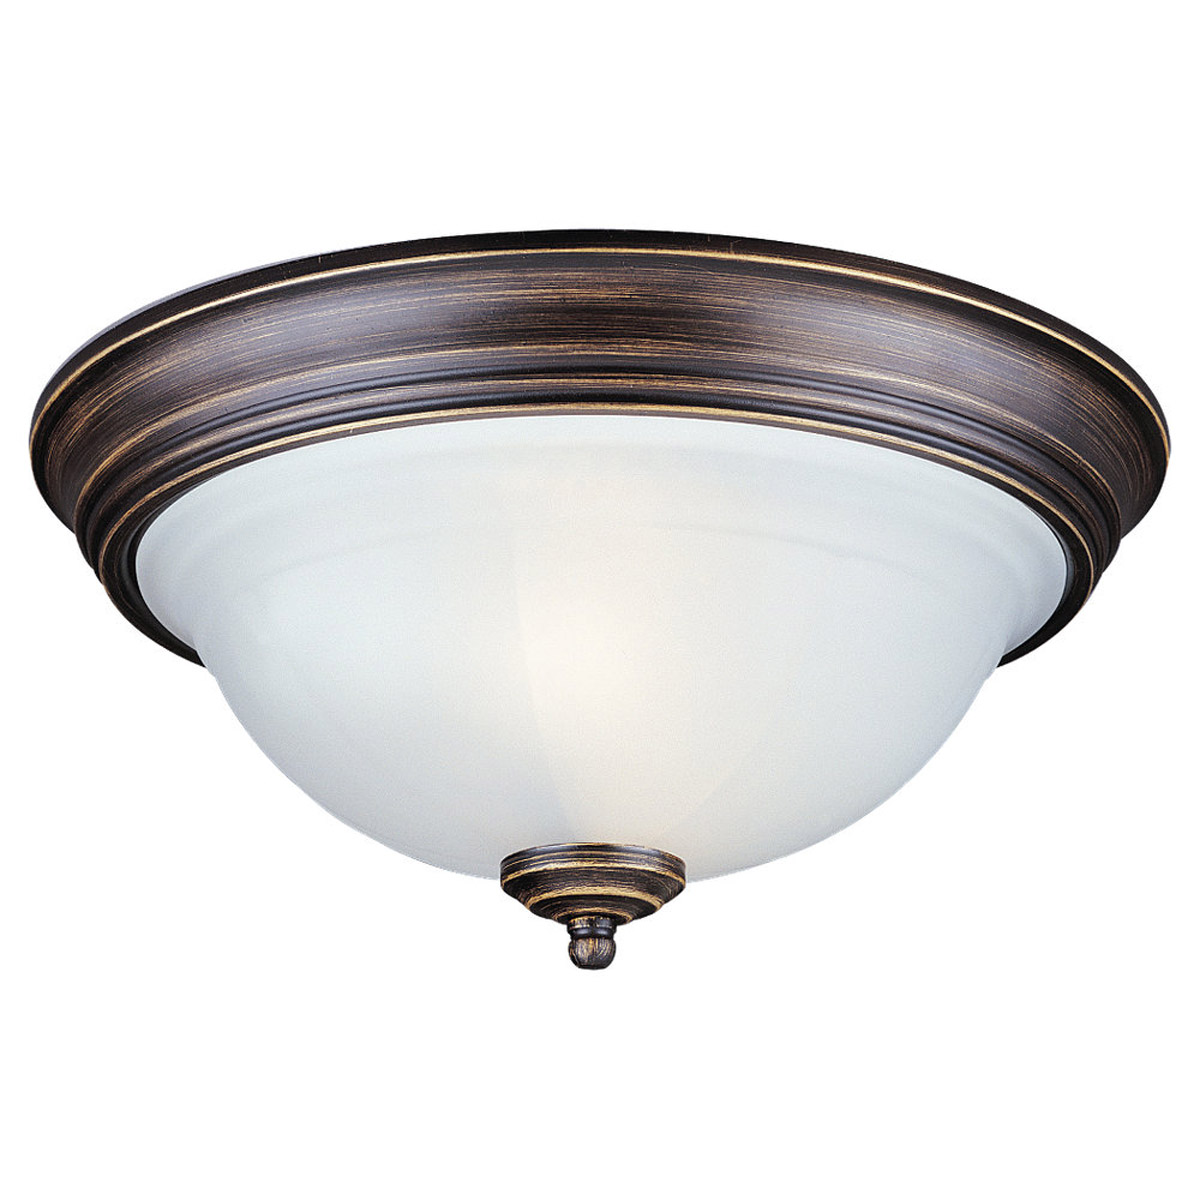 Sea Gull Lighting Canterbury 2 Light Flush Mount in Antique Bronze 77050-71